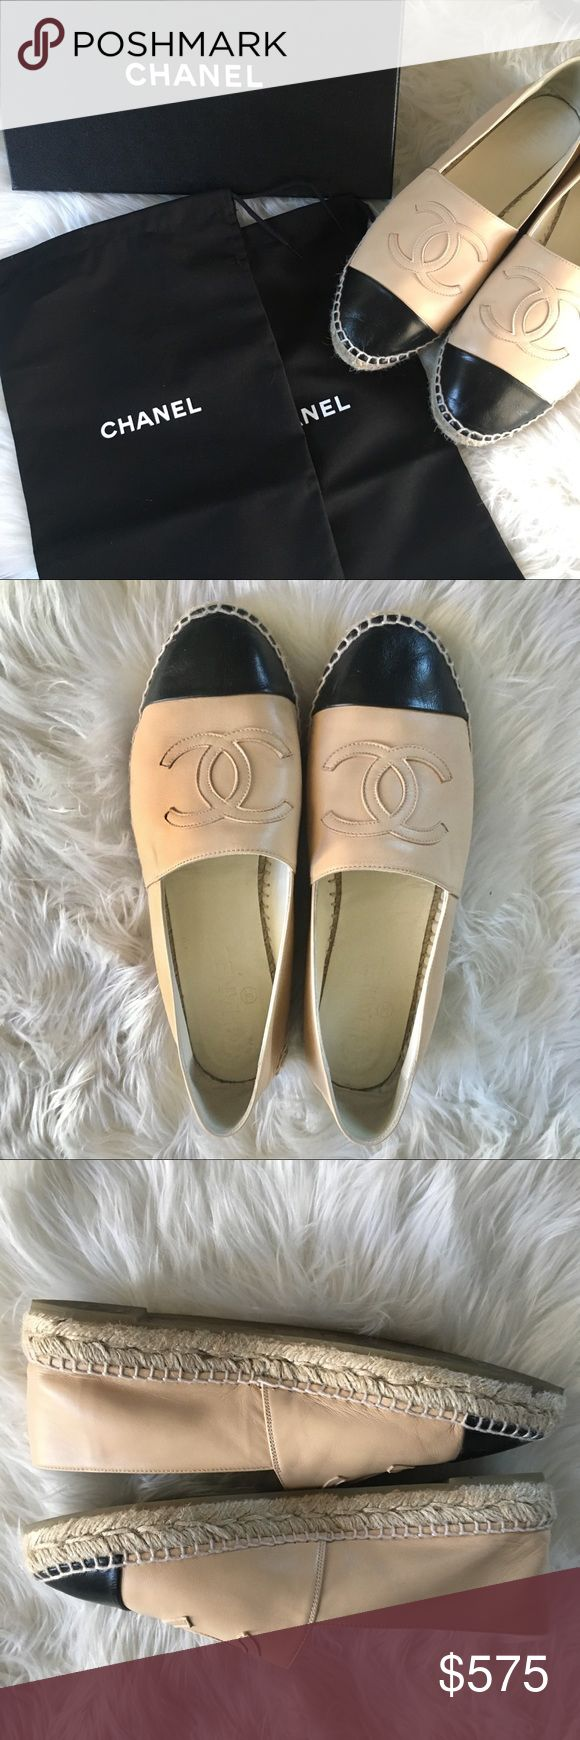 Chanel Espadrilles, cream and black, Size 40 Authentic Chanel espadrilles. Cream and black, lamb skin leather. Worn twice, almost new condition. Comes with original box and two shoe bags. Size 40 which for Chanel is a narrow 9. Always buy a size up for Chanel shoes! Price firm. CHANEL Shoes Espadrilles